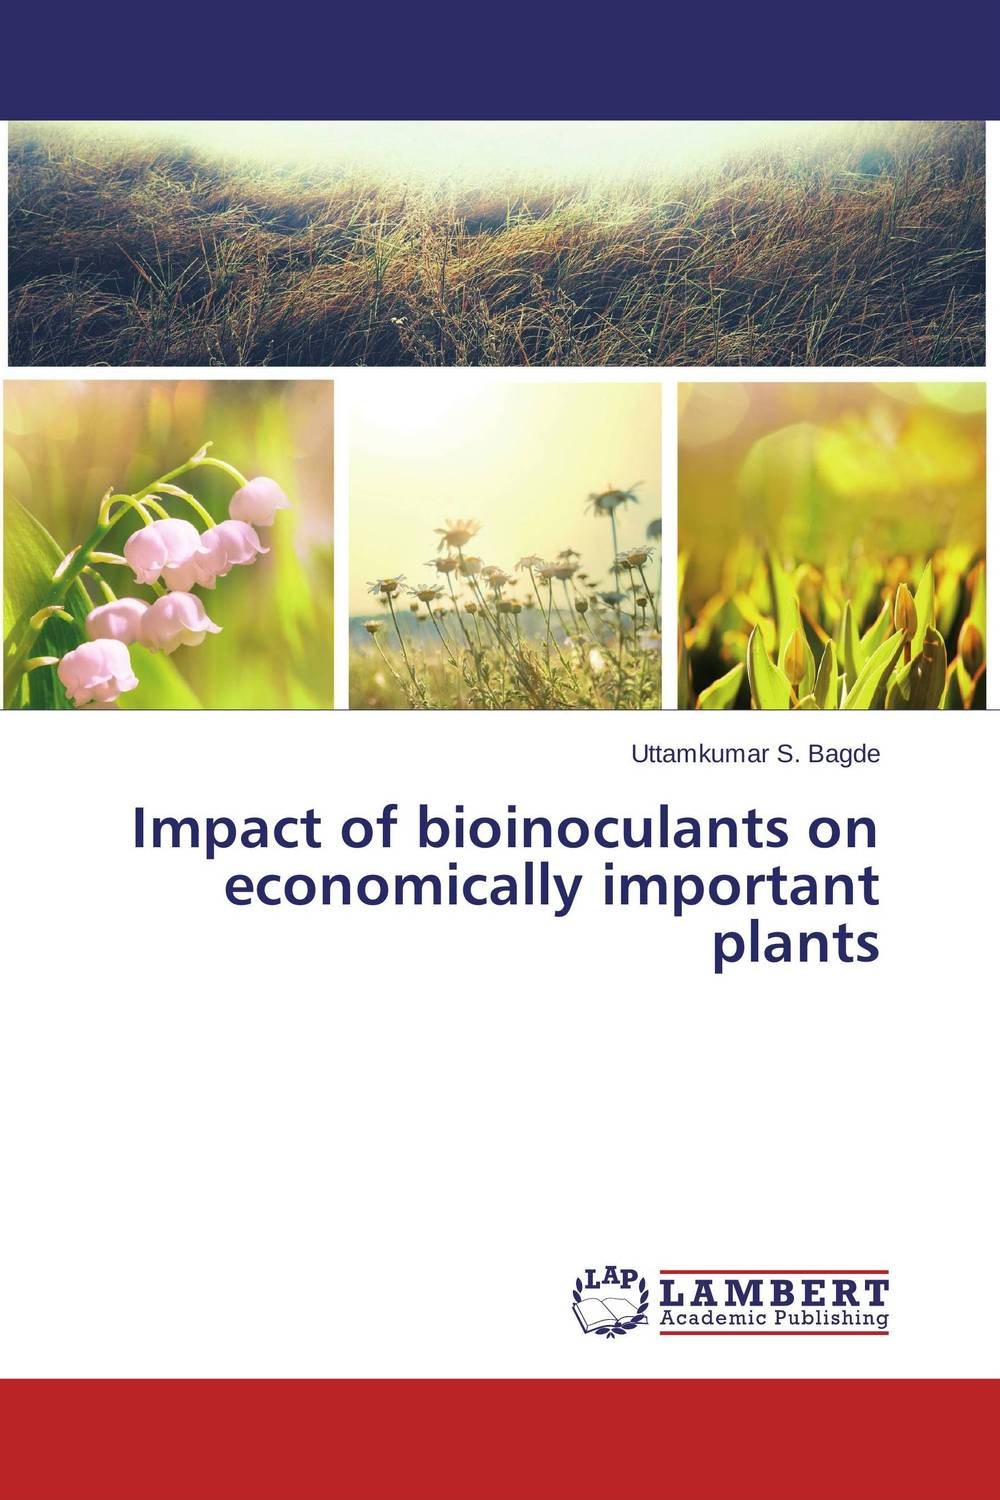 Impact of bioinoculants on economically important plants manisha sharma ajit varma and harsha kharkwal interaction of symbiotic fungus with fenugreek